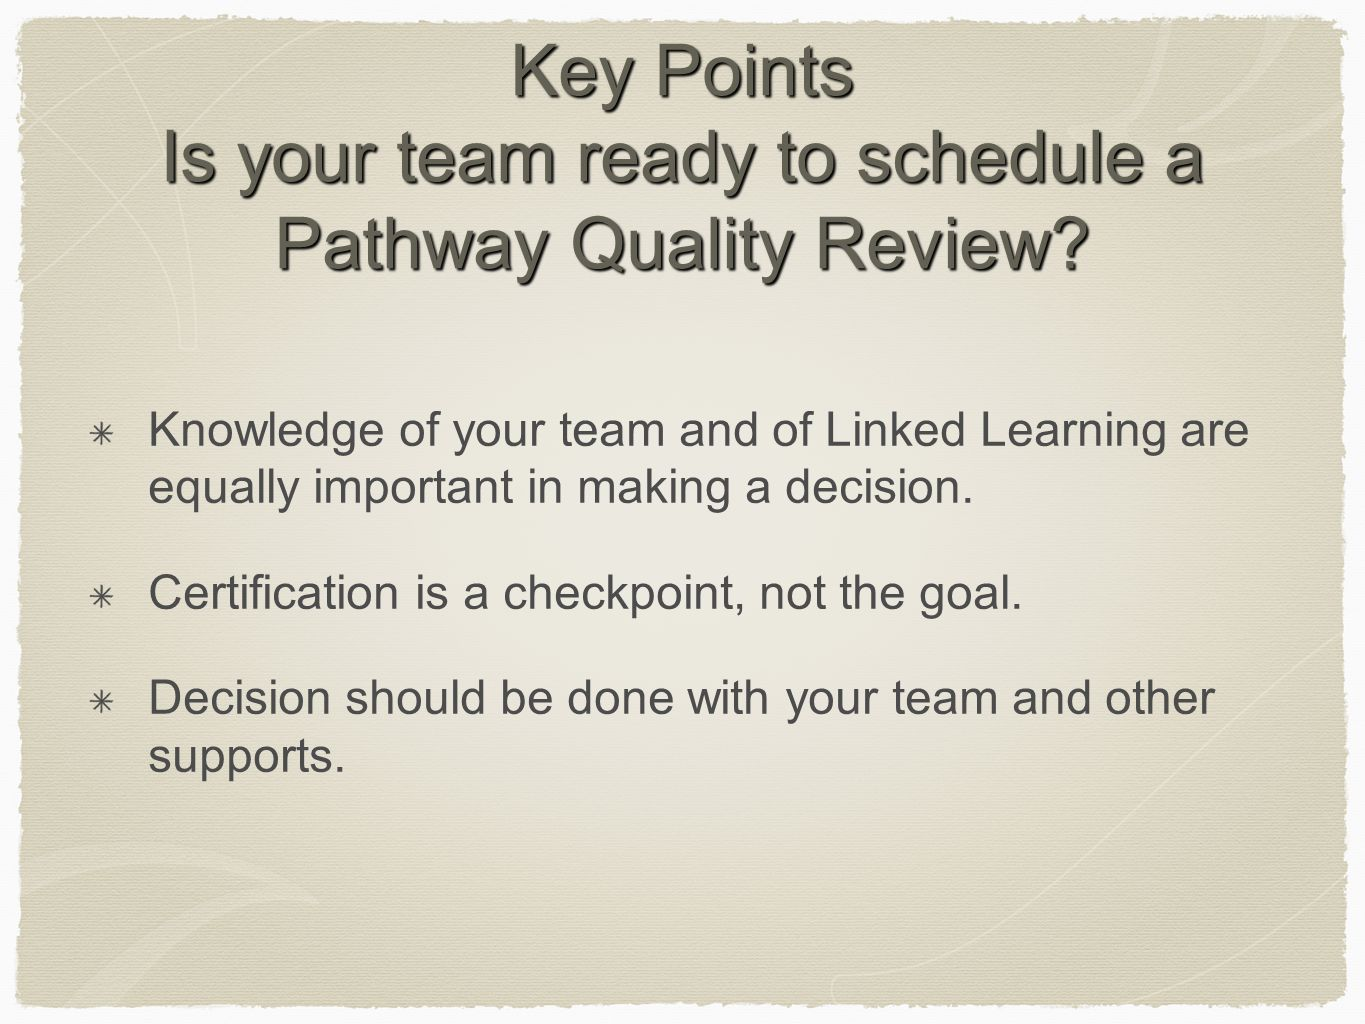 Key Points Is your team ready to schedule a Pathway Quality Review? Knowledge of your team and of Linked Learning are equally important in making a de